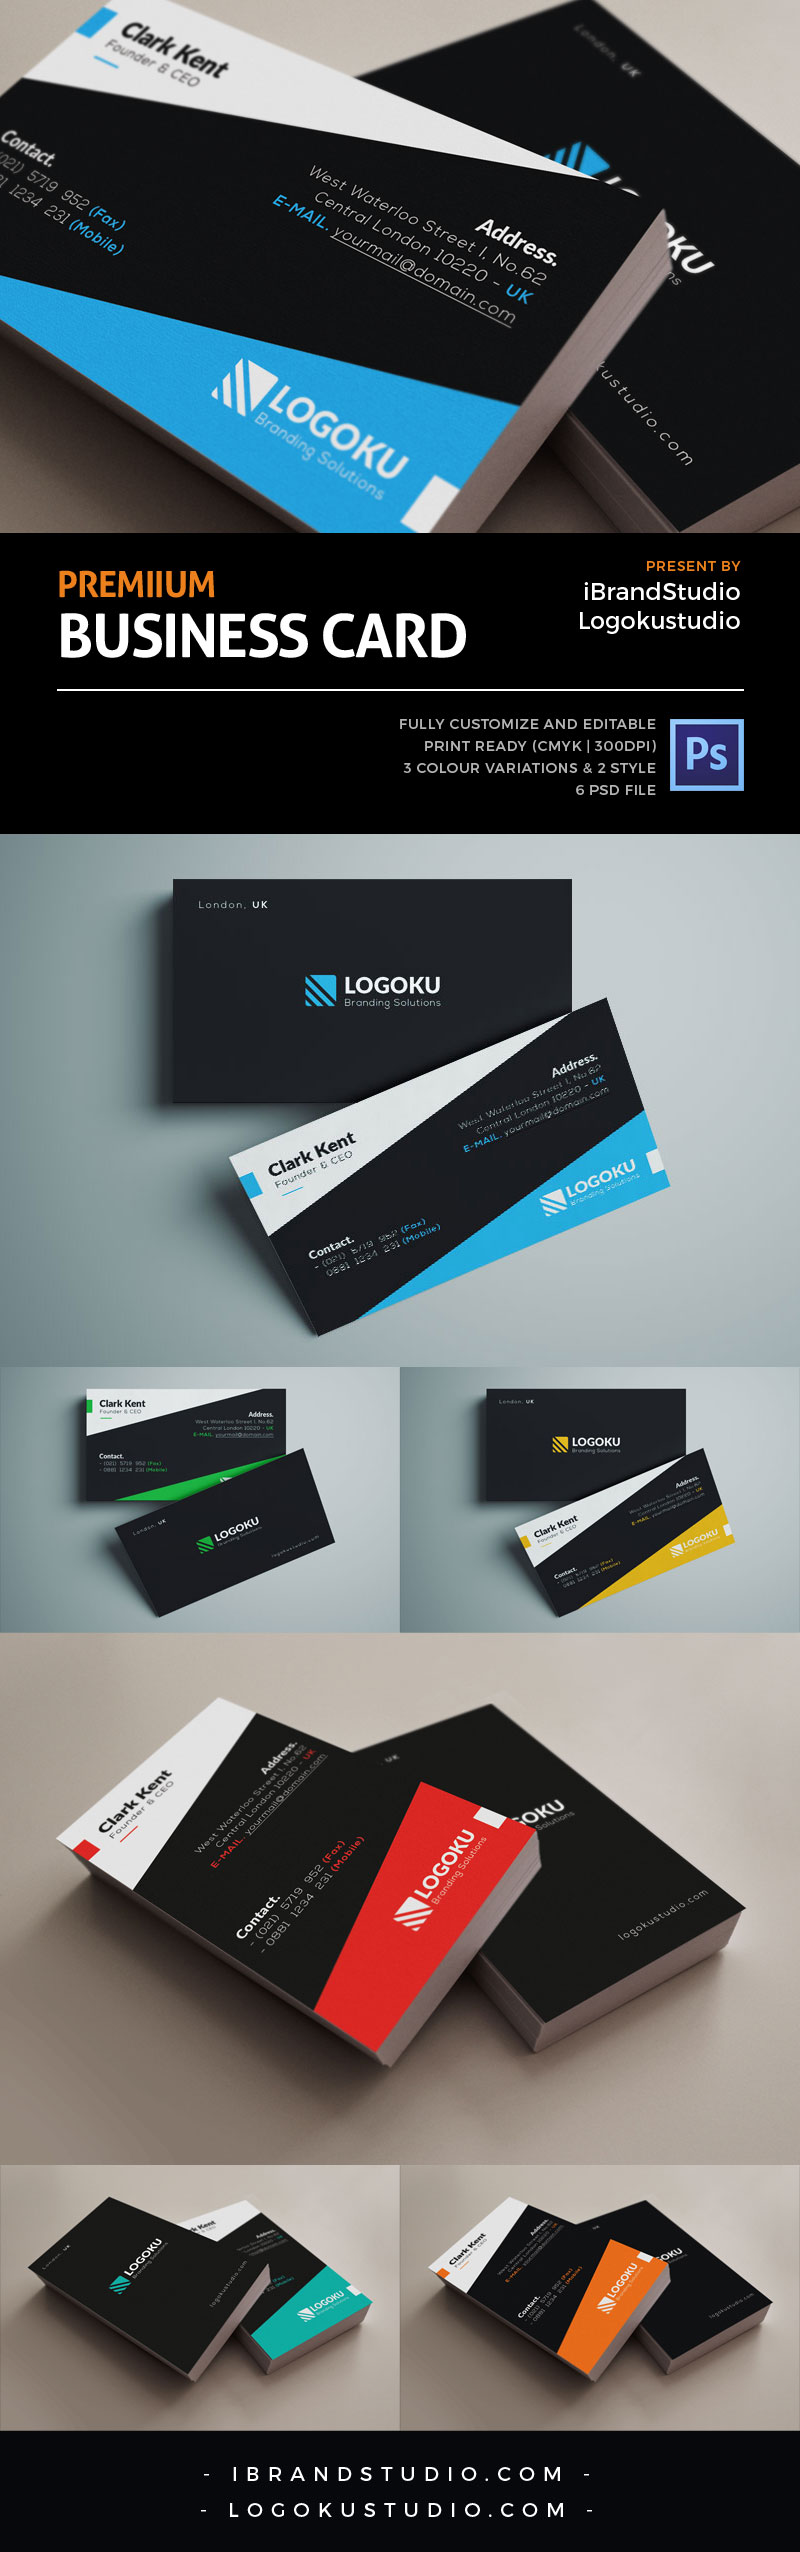 Free Vertical & Horizontal Corporate Business Card Template PSD